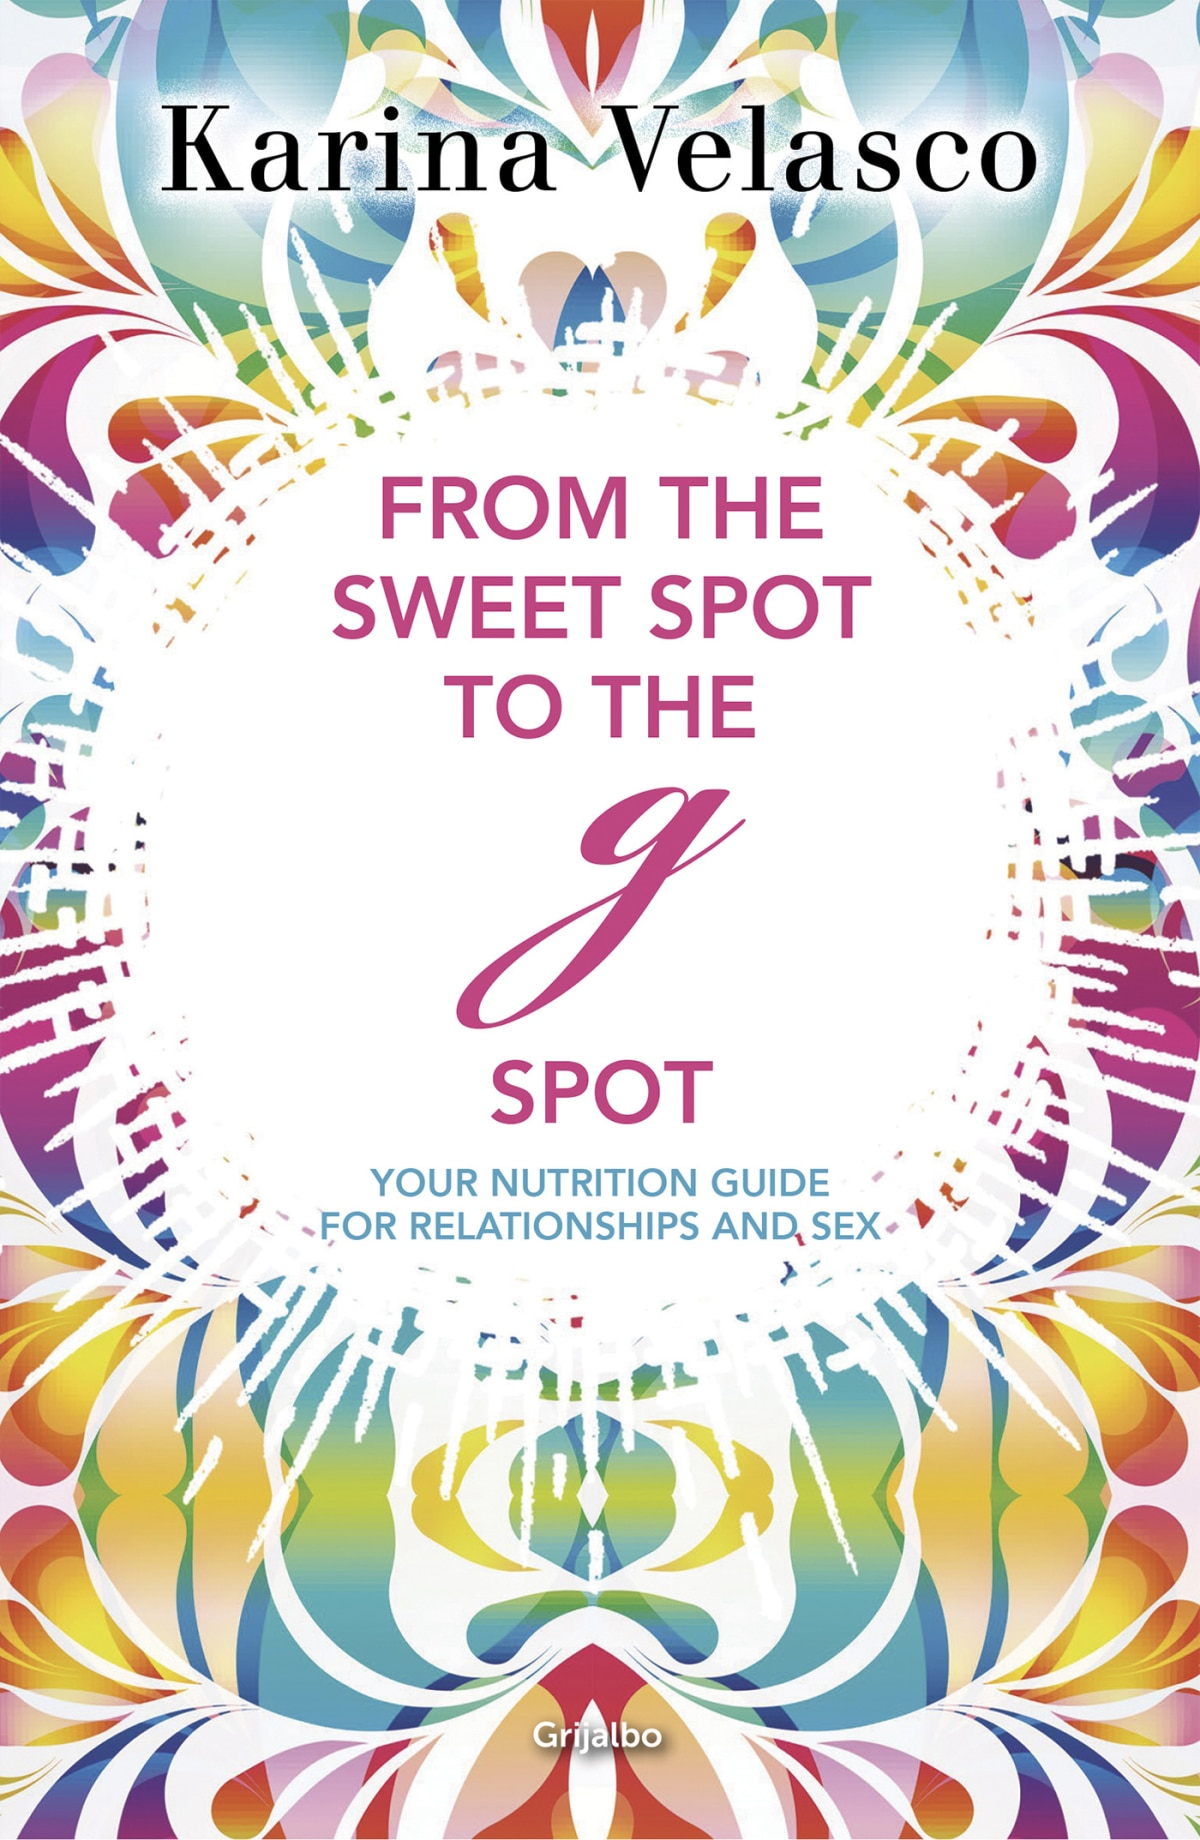 From the sweet spot to the G spot